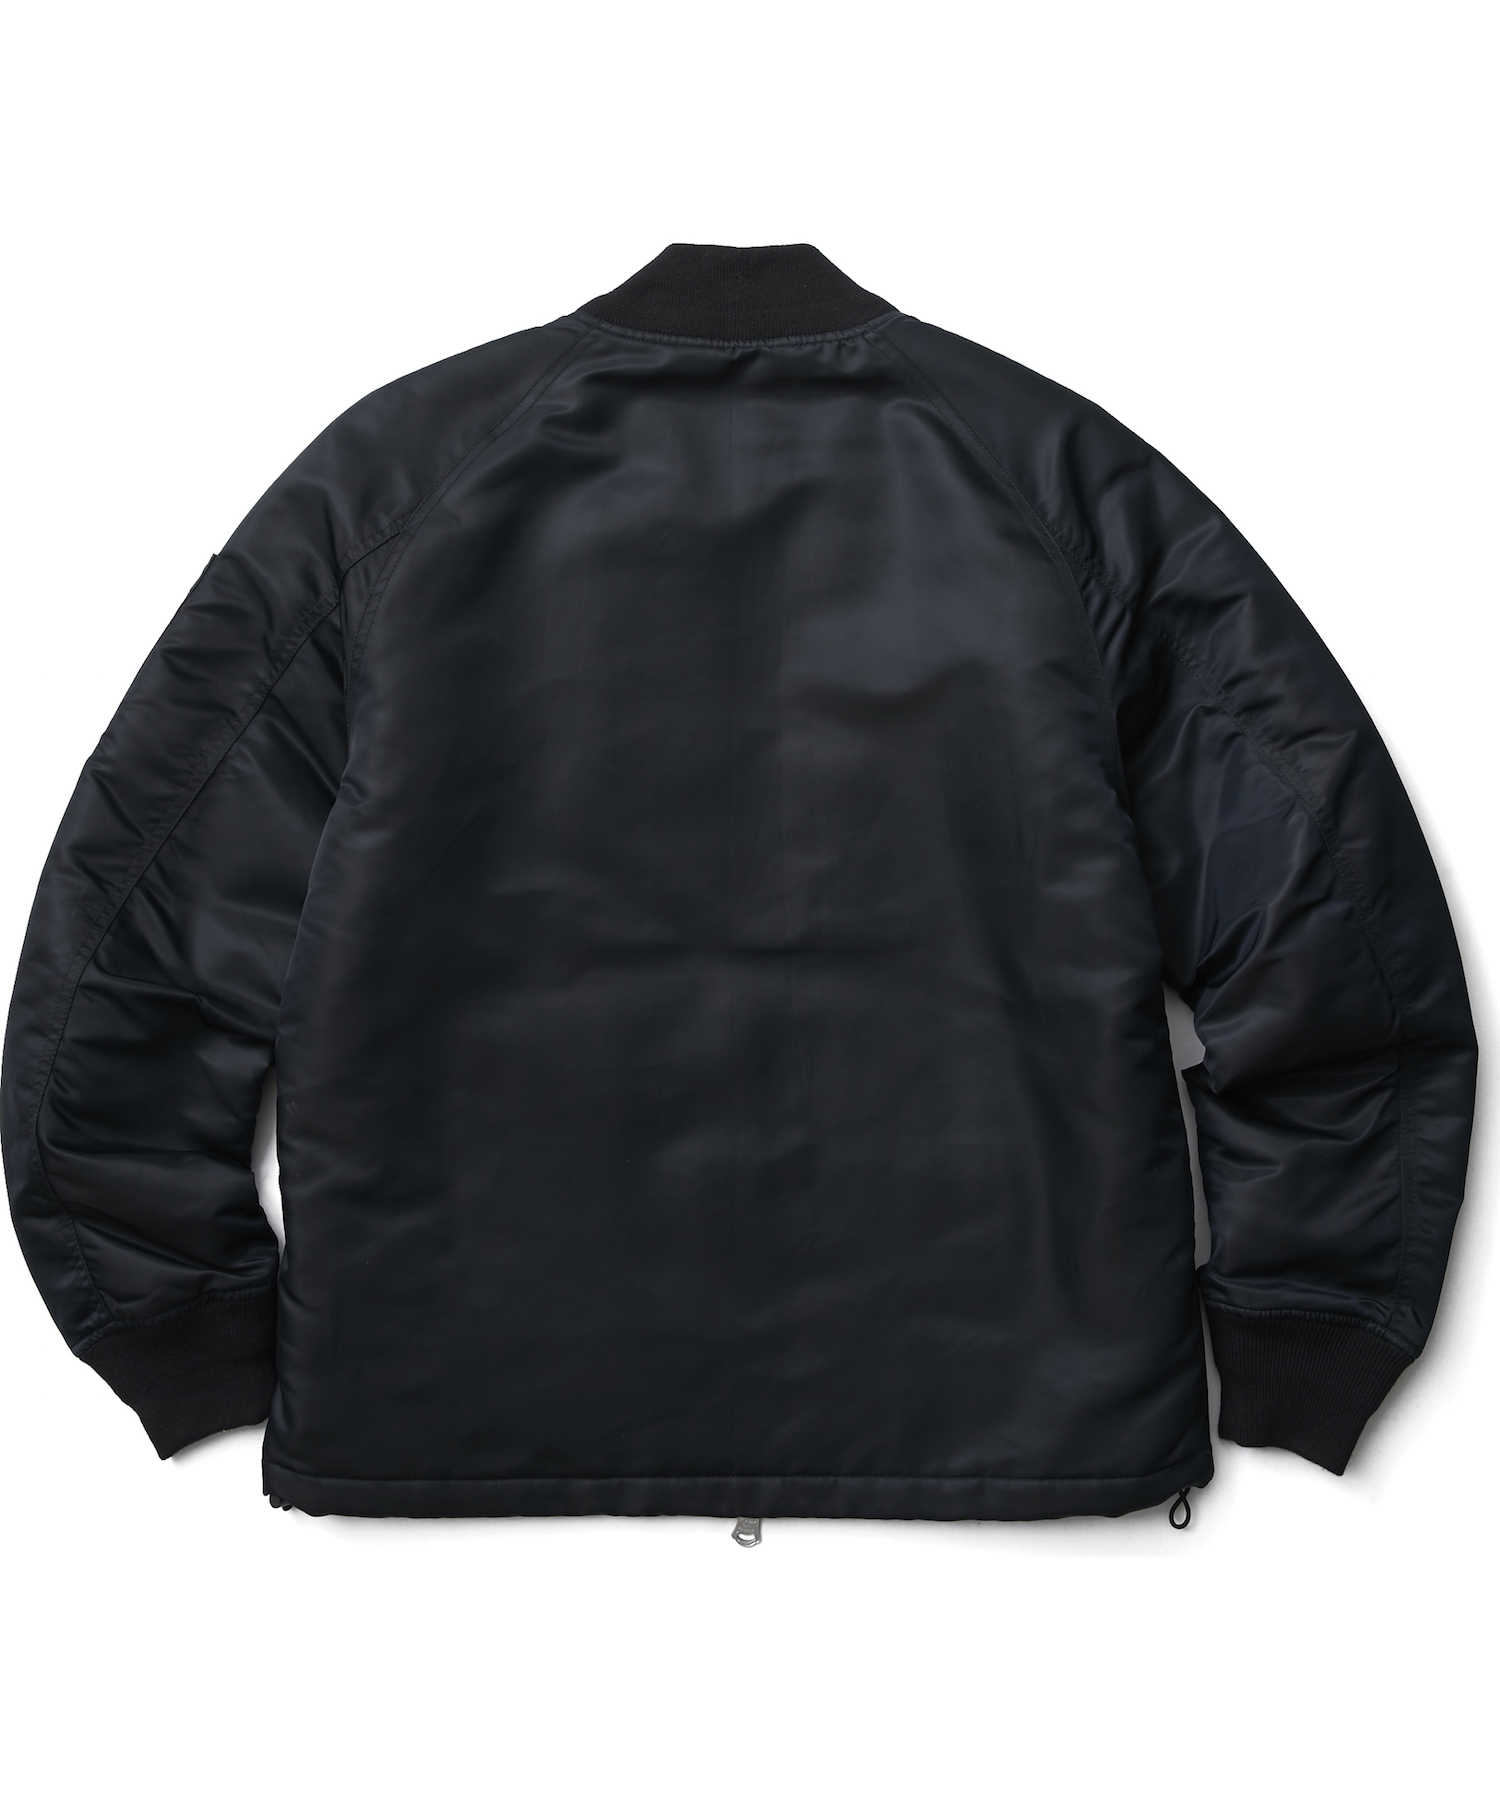 CRIMIE / MA-1 JACKET (BK)